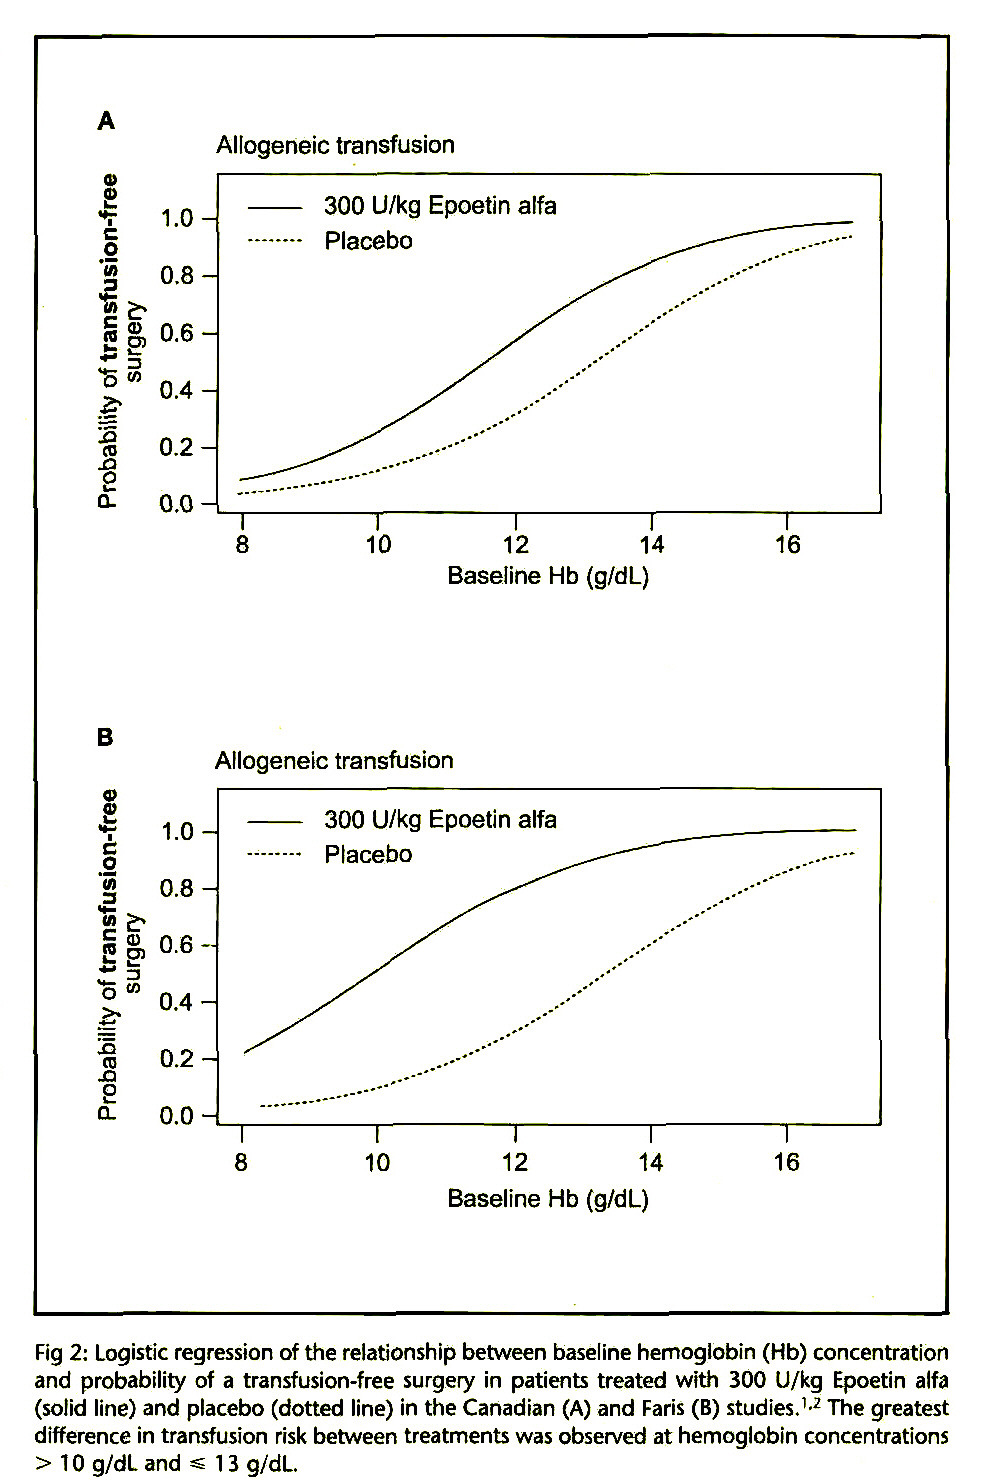 Fig 2: Logistic regression of the relationship between baseline hemoglobin (Hb) concentration and probability of a transfusion-free surgery in patients treated with 300 U/kg Epoetin alfa (solid line) and placebo (dotted line) in the Canadian (A) and Faris (B) studies.1,2 The greatest difference in transfusion risk between treatments was observed at hemoglobin concentrations > 1 0 g/dL and ^ 1 3 g/dL.